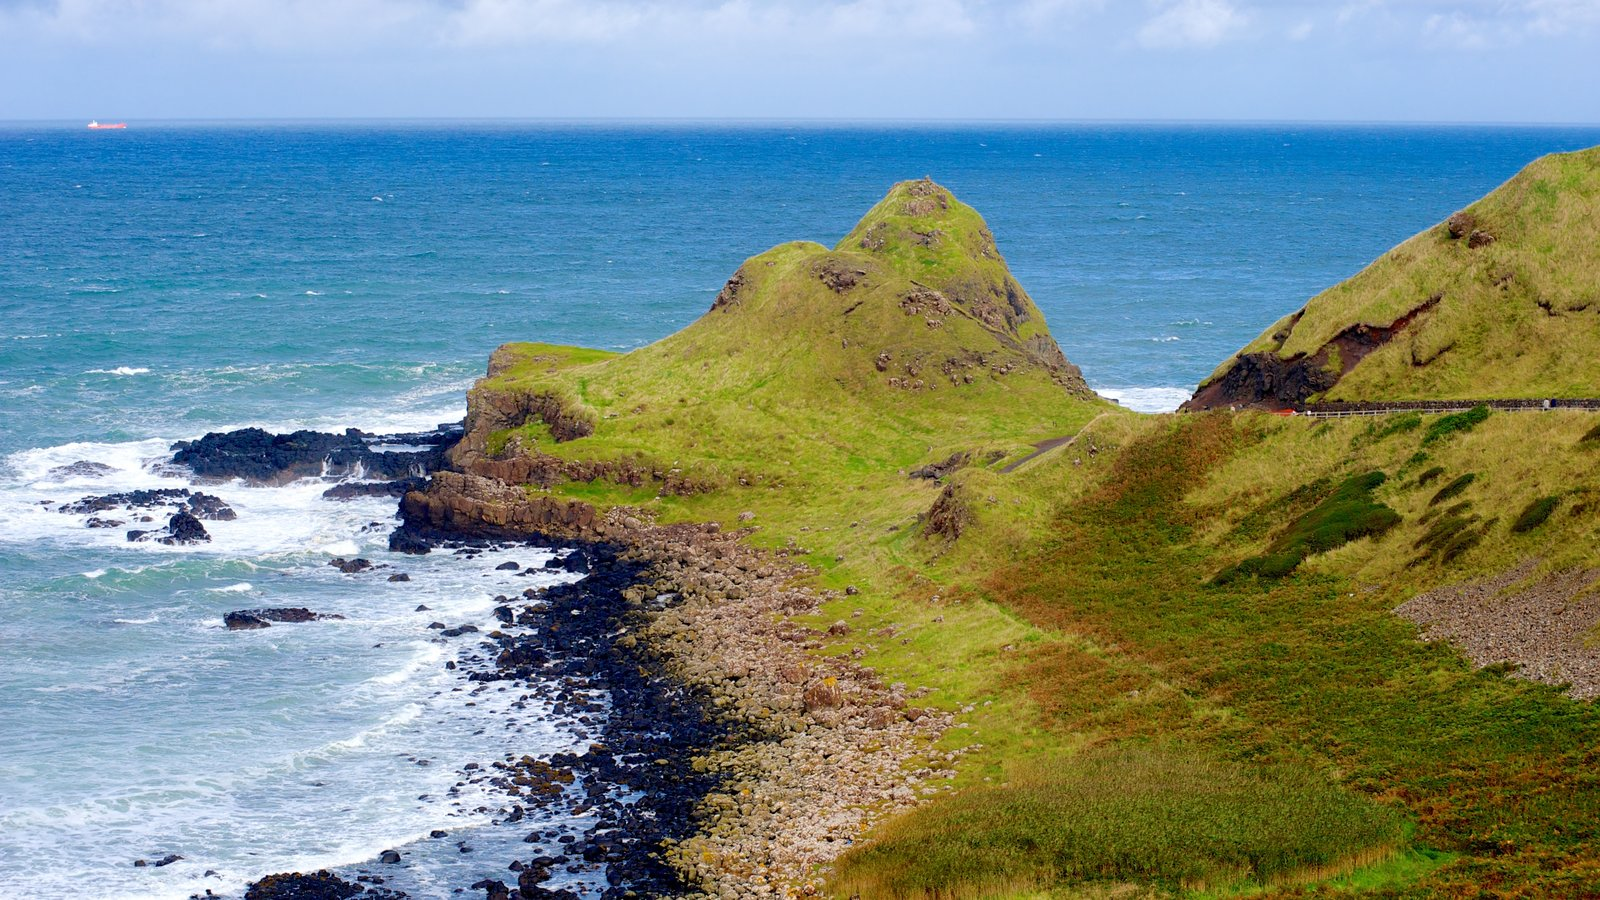 Giant\'s Causeway featuring tranquil scenes and rocky coastline